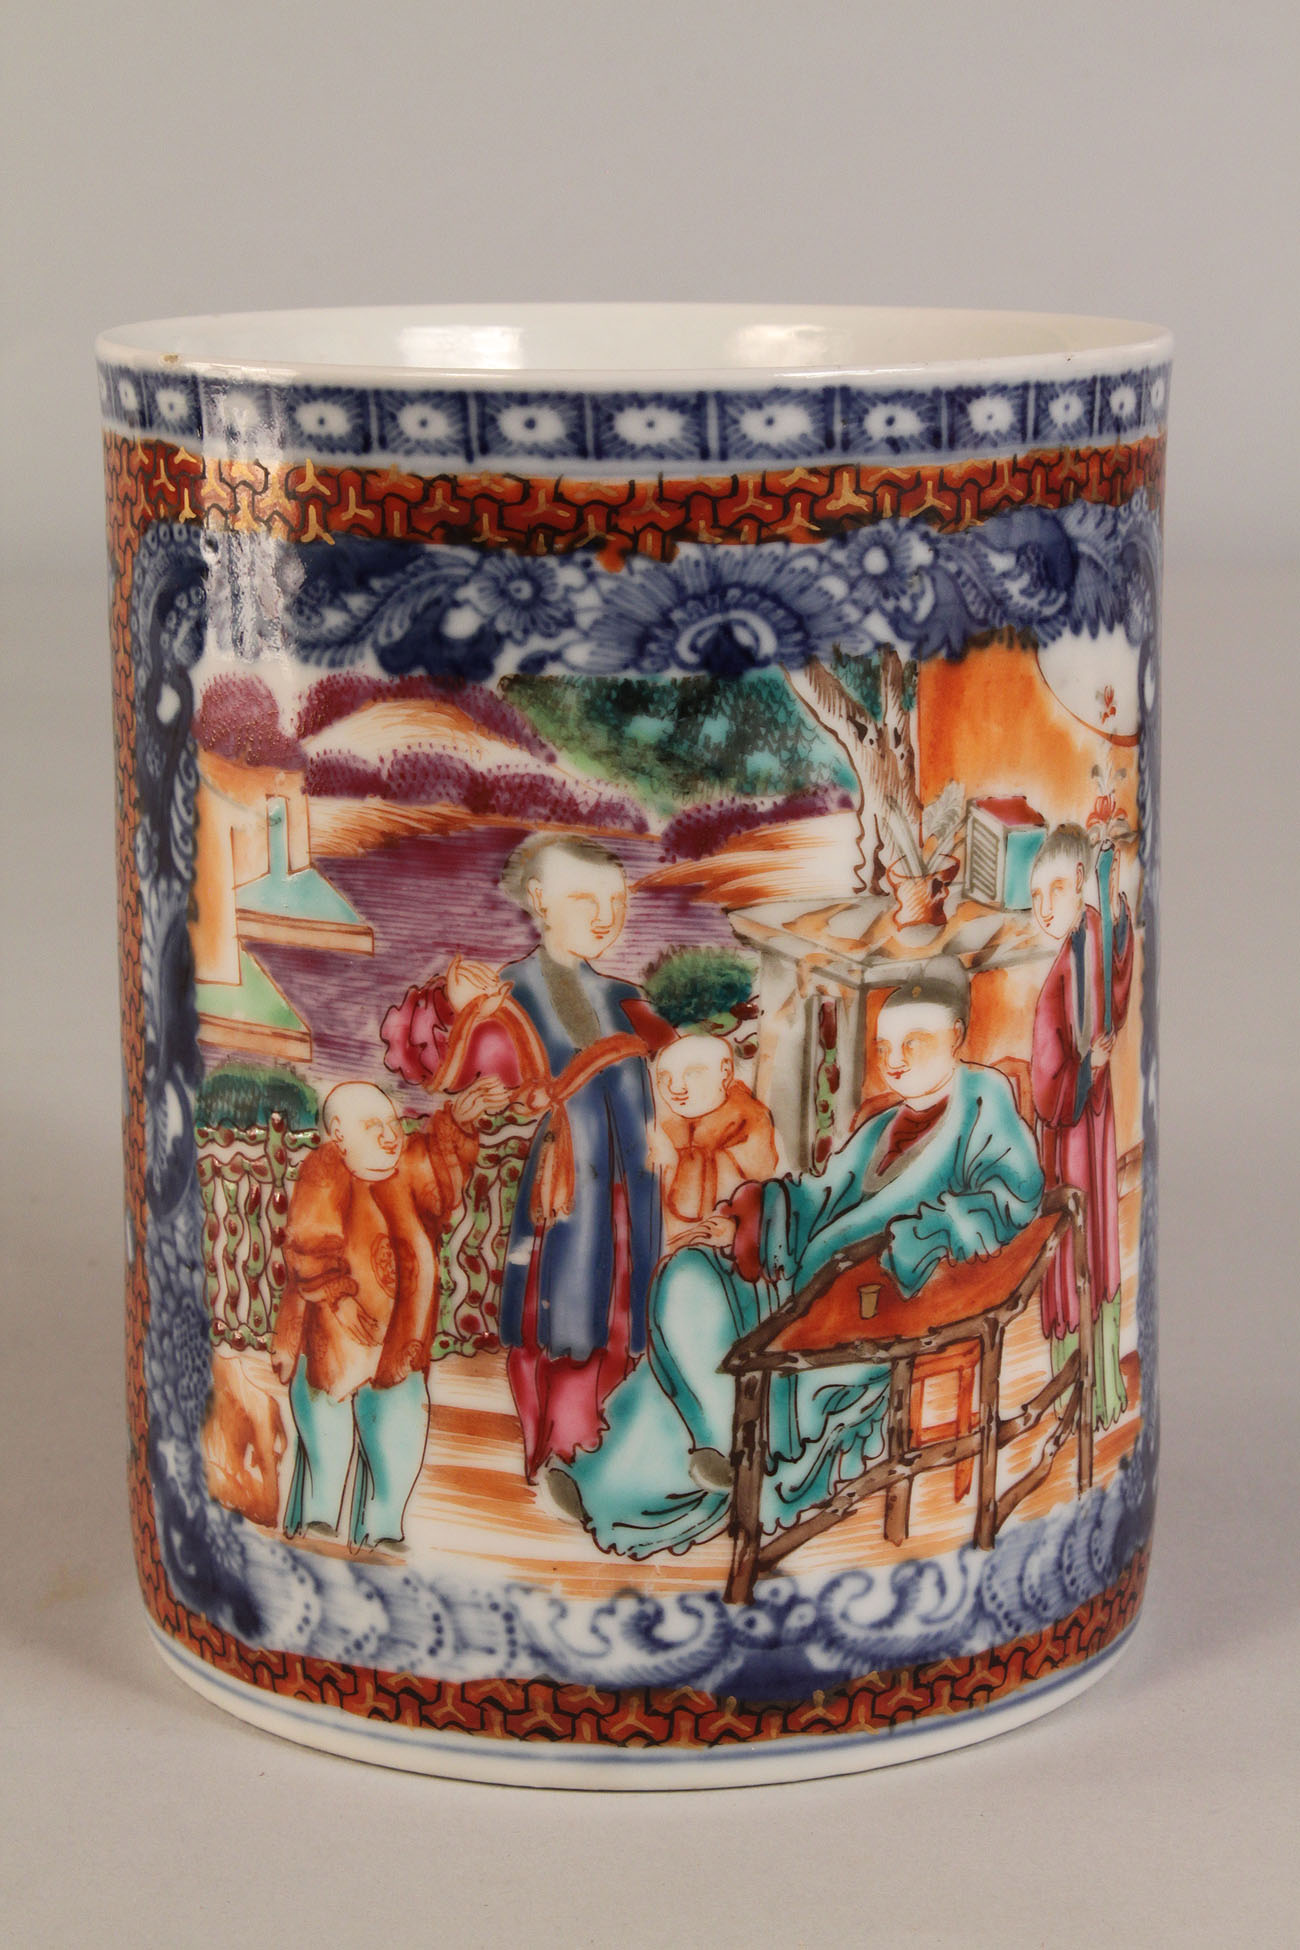 Lot 446: Chinese Export Mug or Tankard, Clobbered style